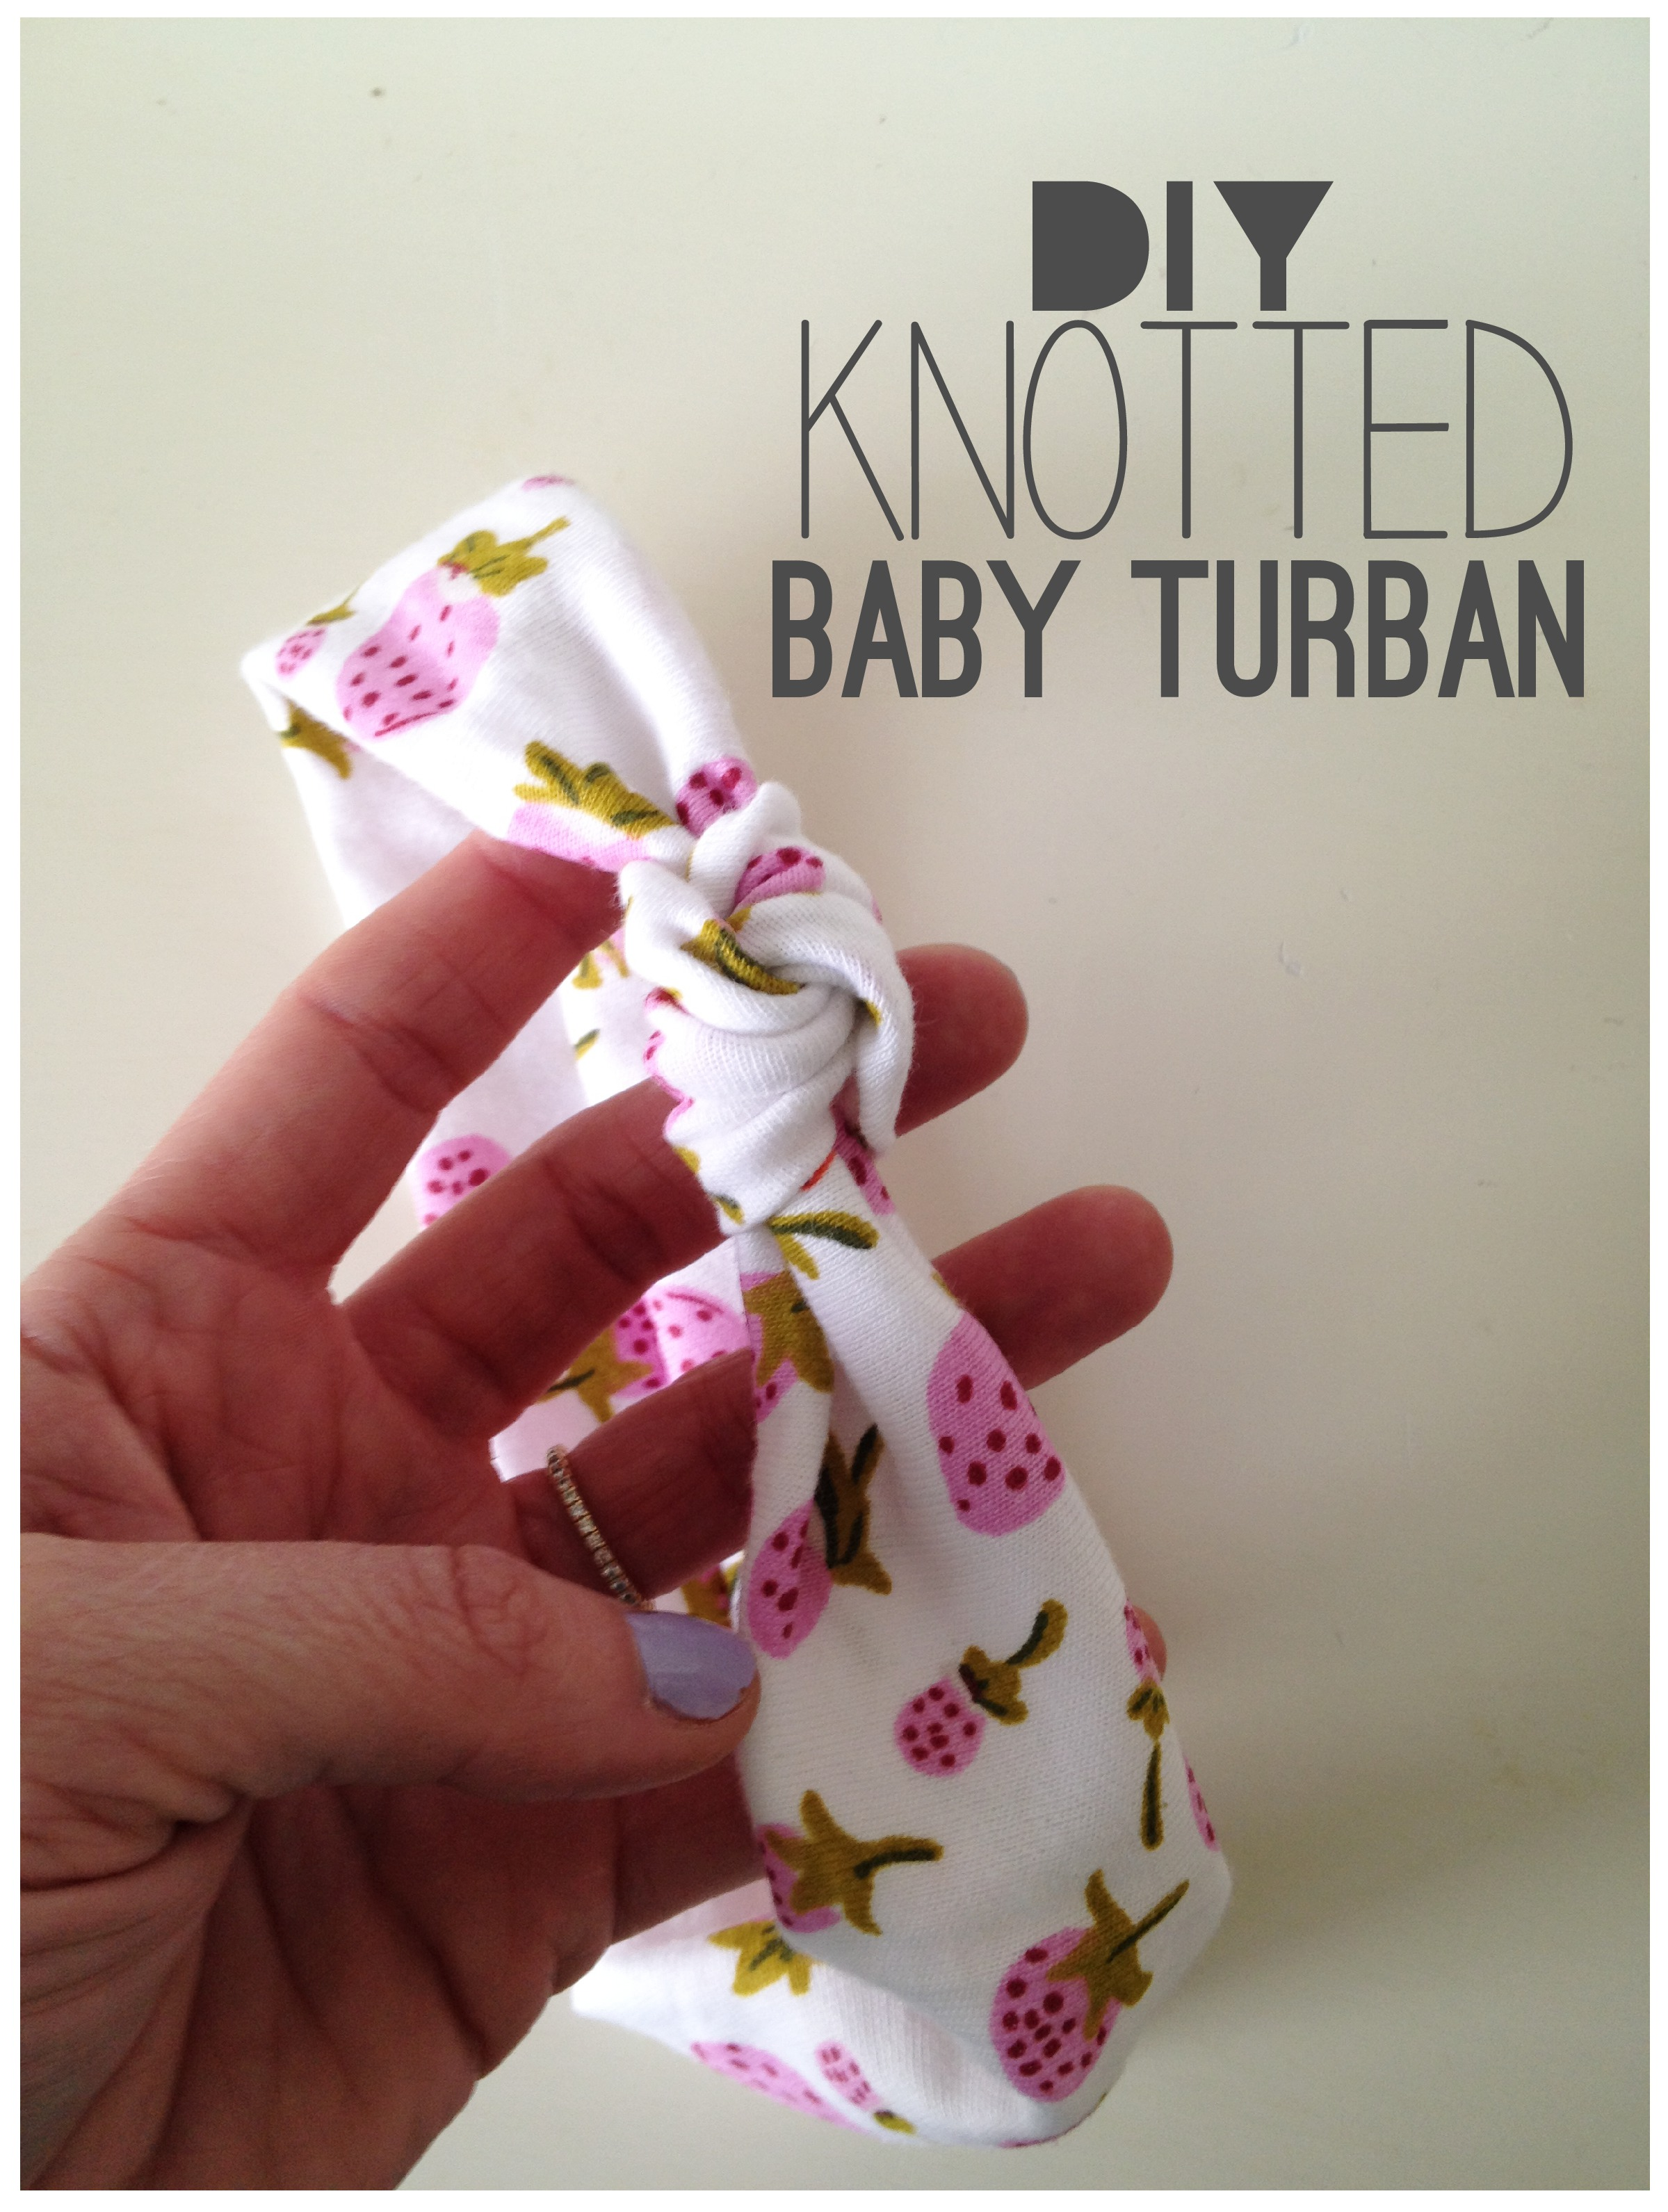 Knotted Baby Turban Tutorial | The Sara Project